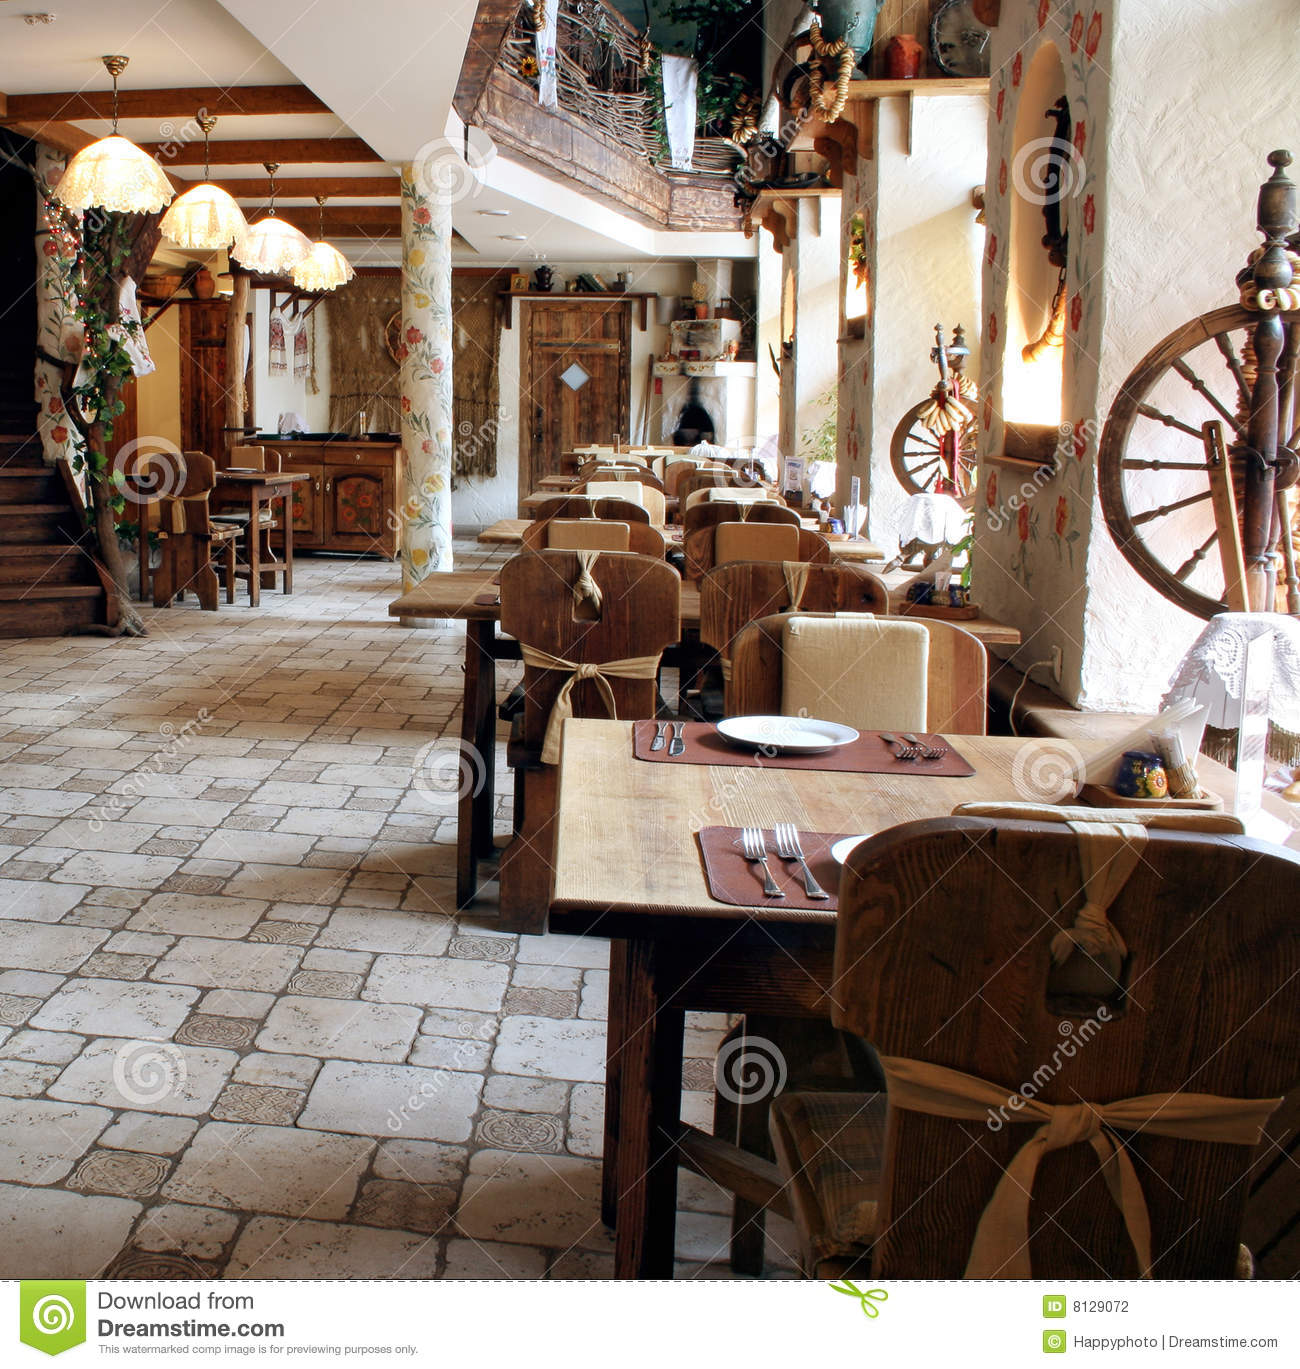 Restaurant In Country Style Stock Photography Image 8129072